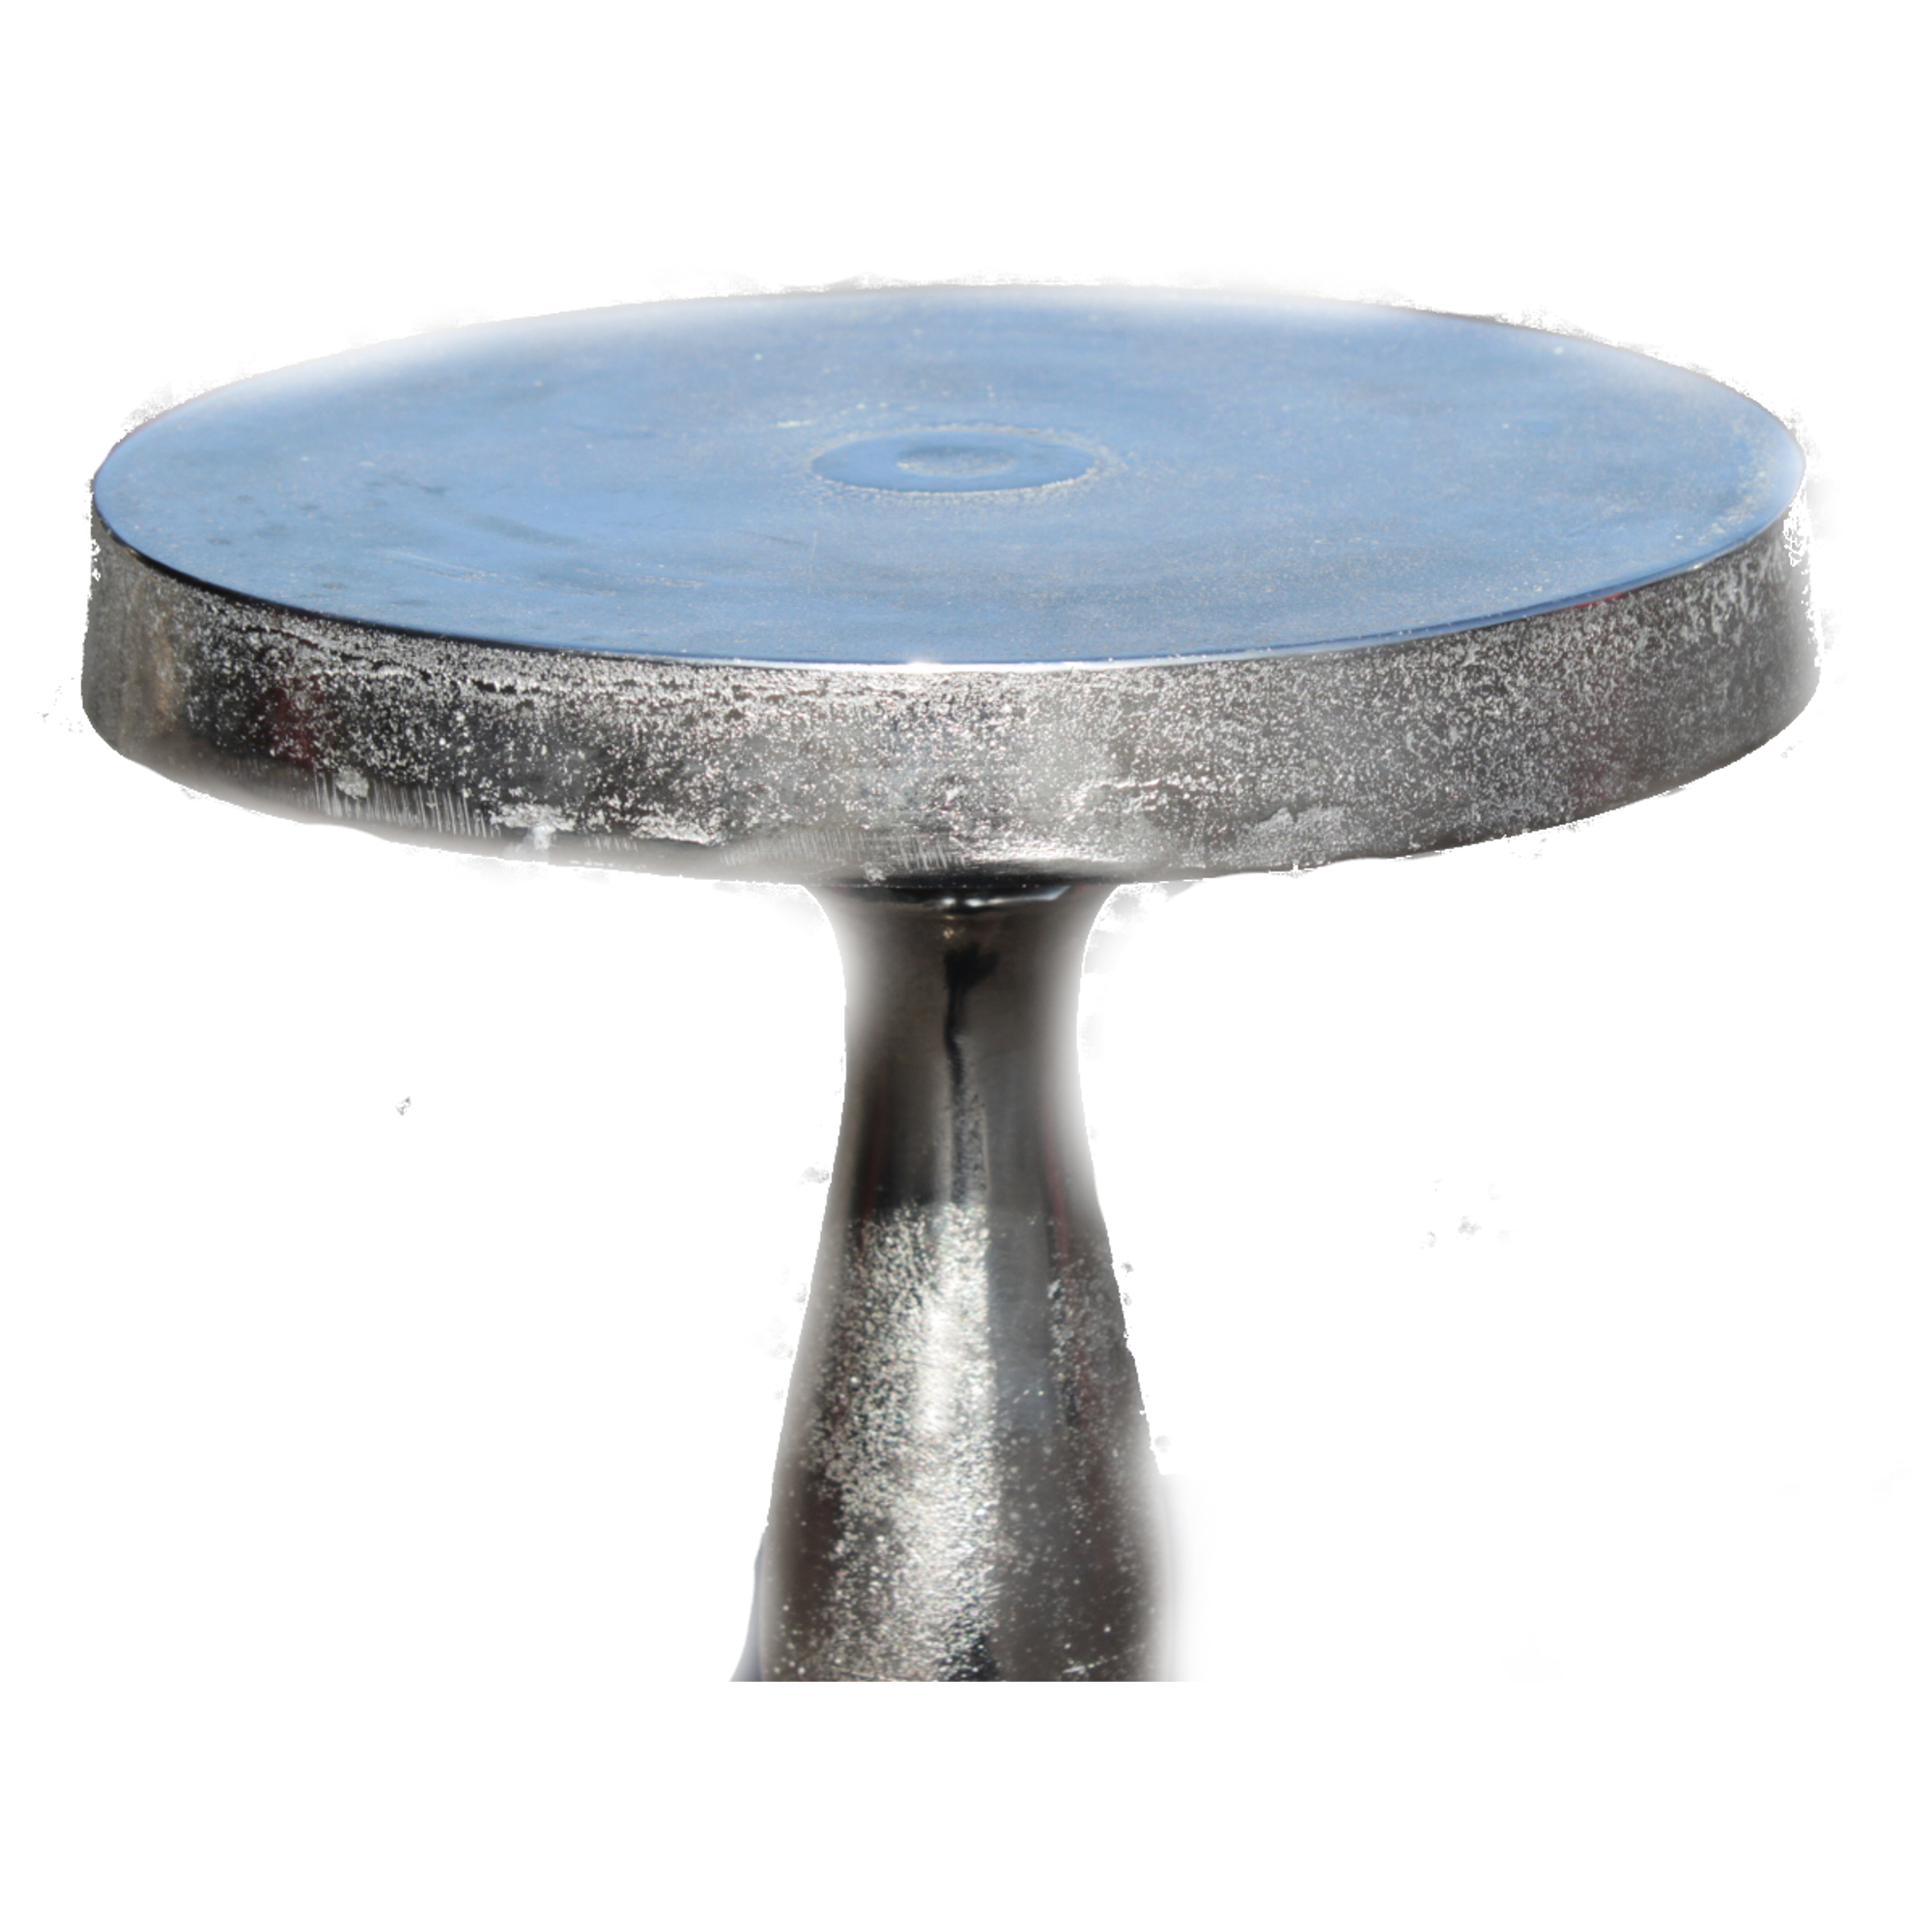 Aluminium Rough Cast Round Pedestal Side Table 45cm Tall